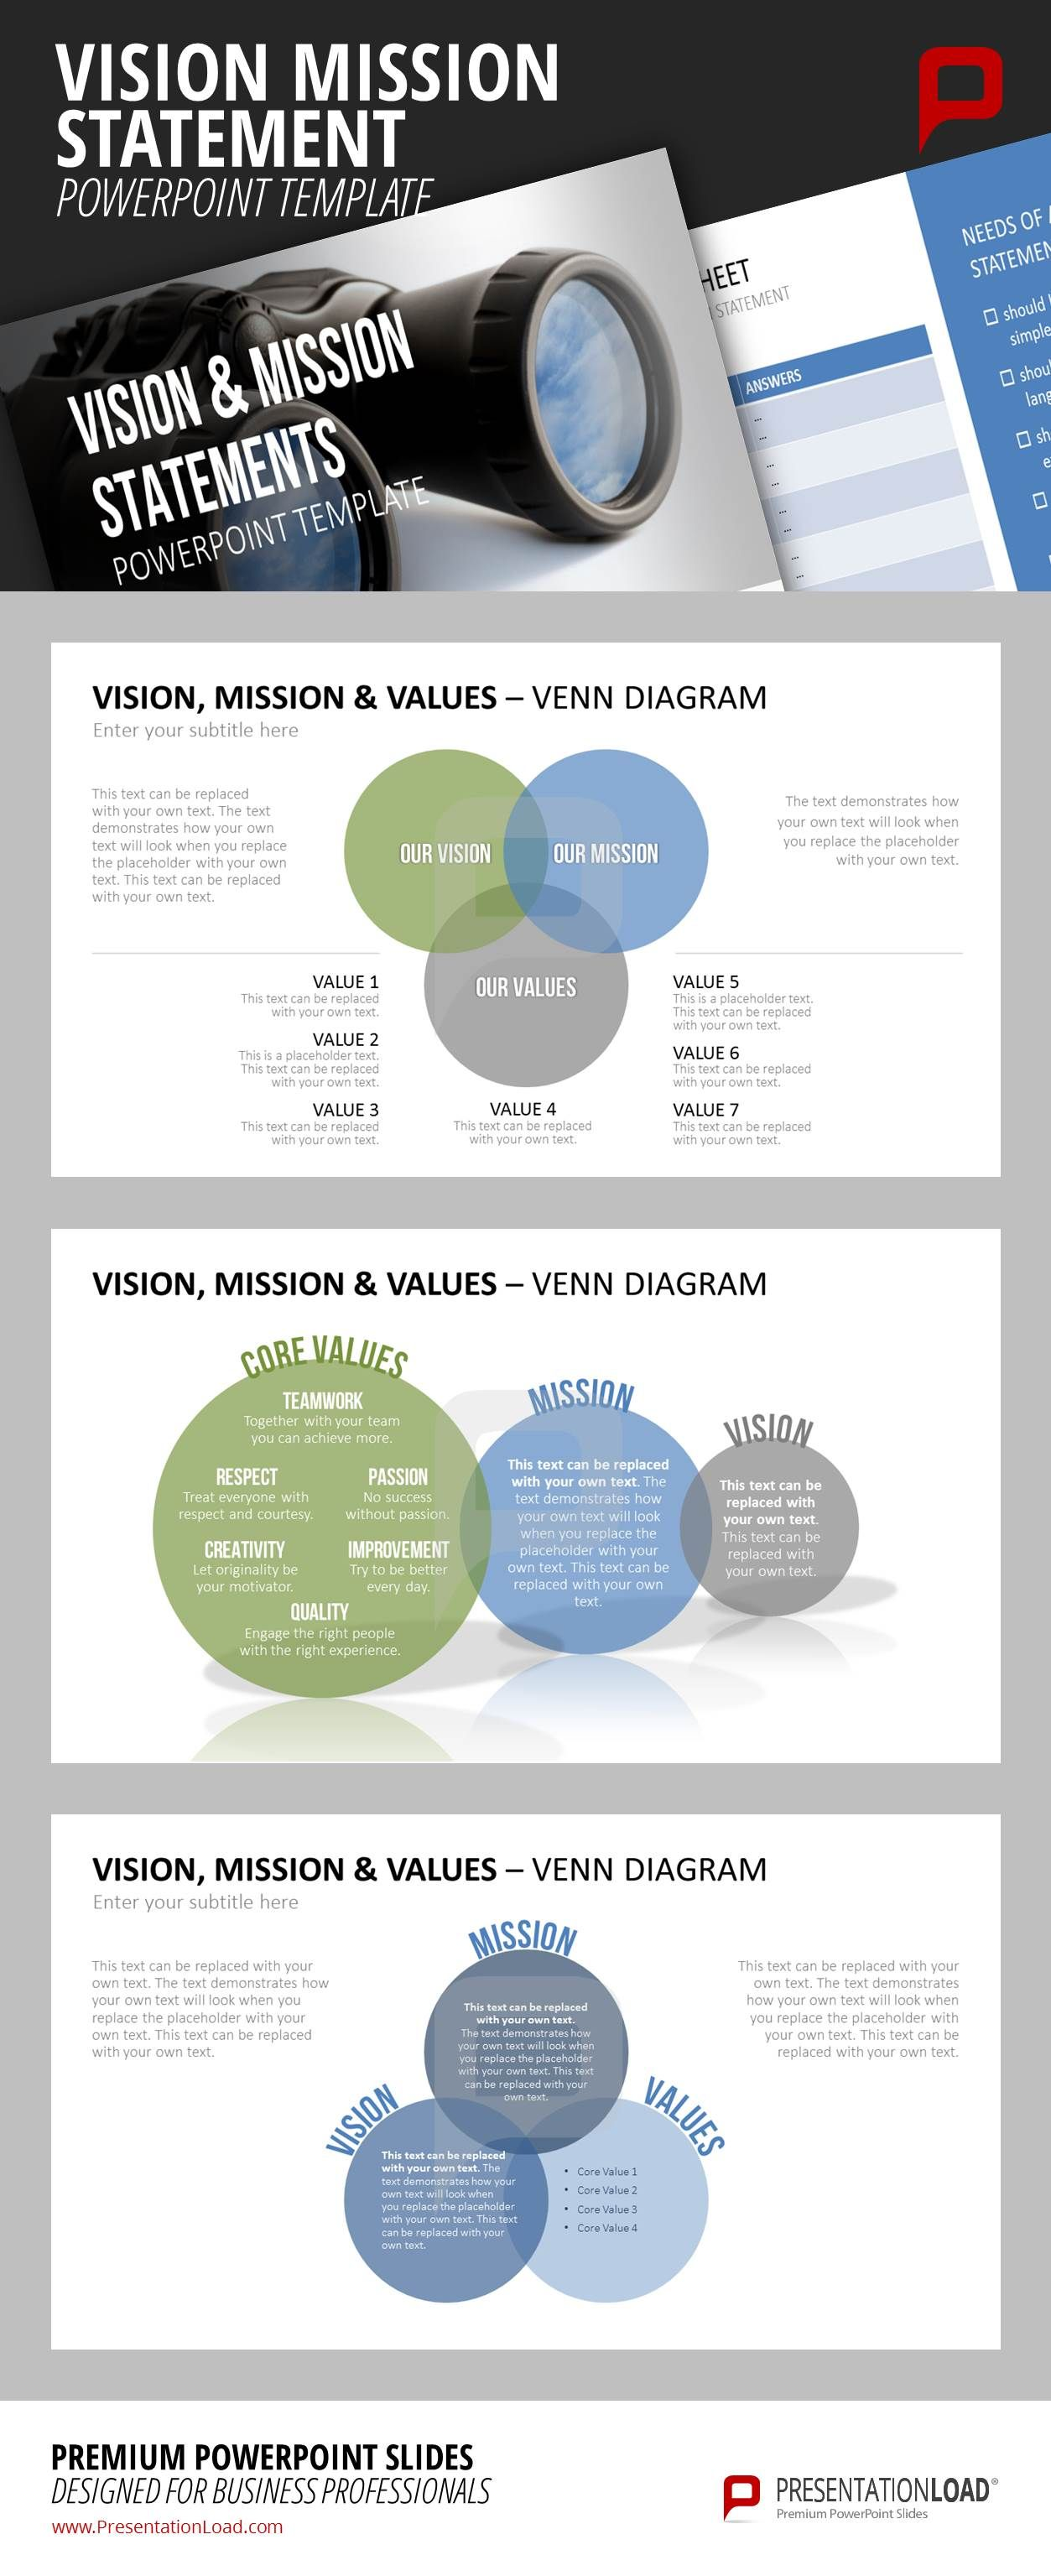 Make Use Of Our Colorful Venn Diagrams To Illustrate The